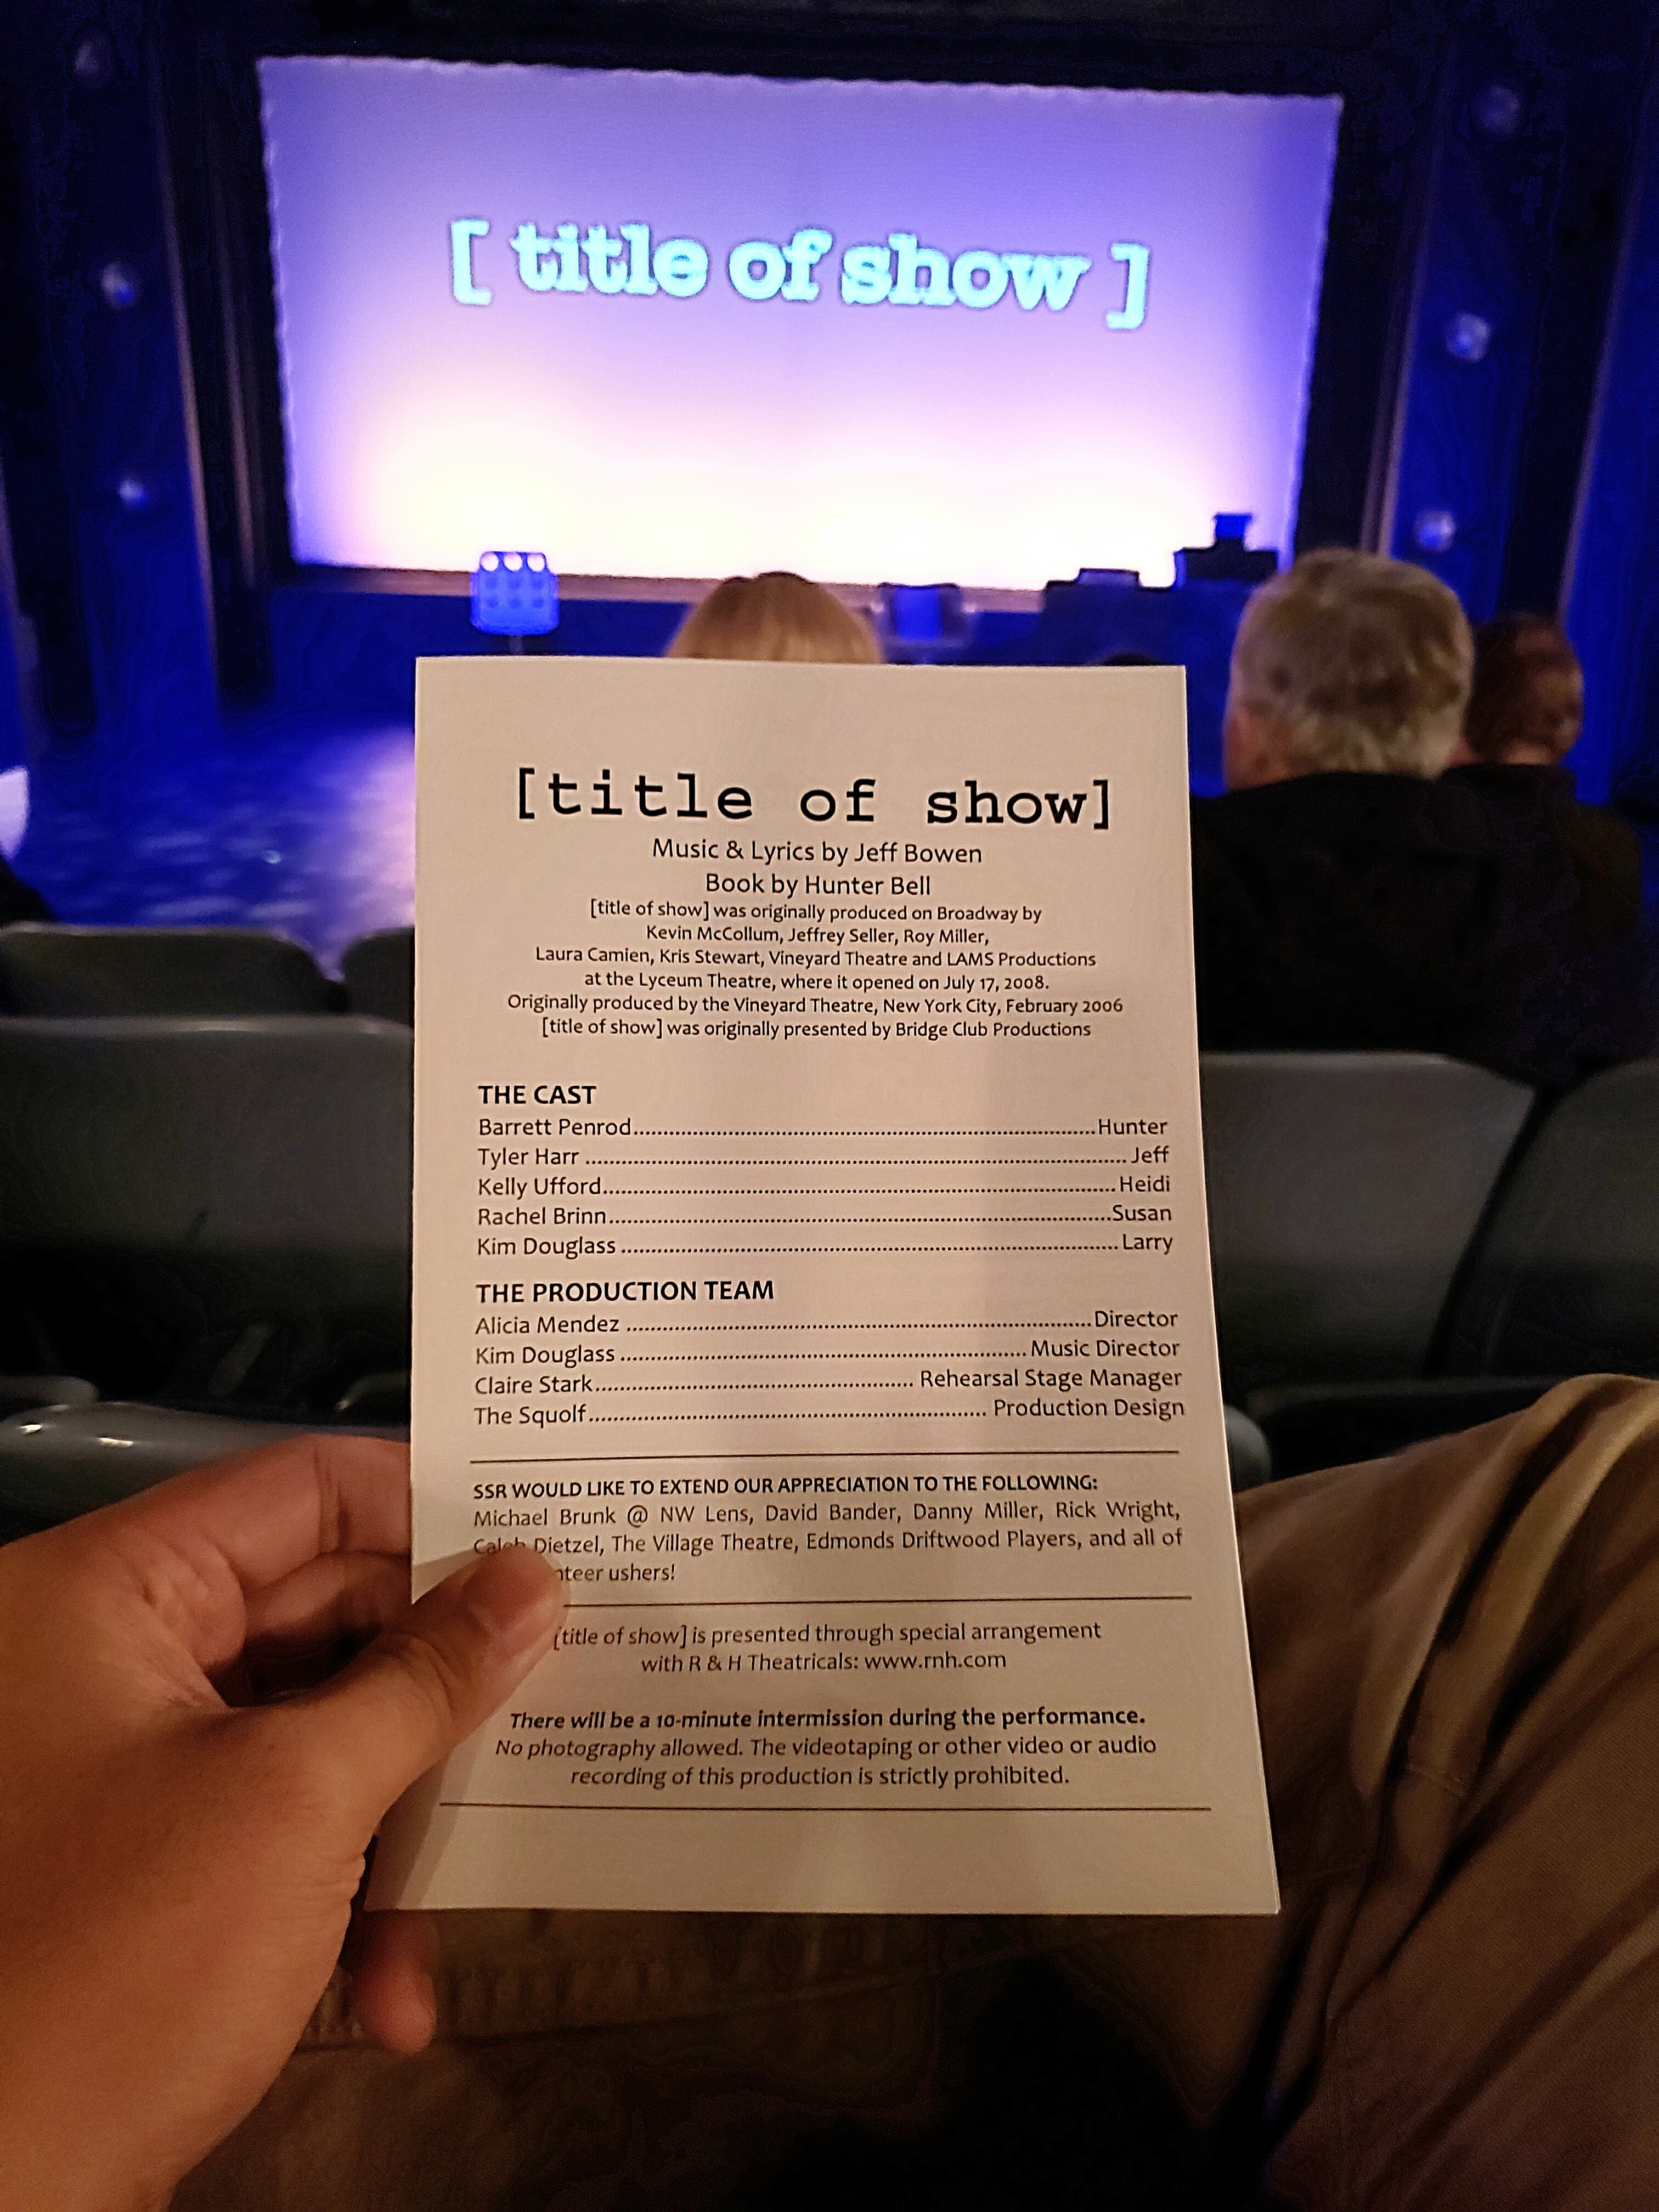 Opening weekend to the musical Title of show. Stiffer performance than what I initially saw at Bainbridge Performing Arts. But the actress that played Heidi had an amazing voice.